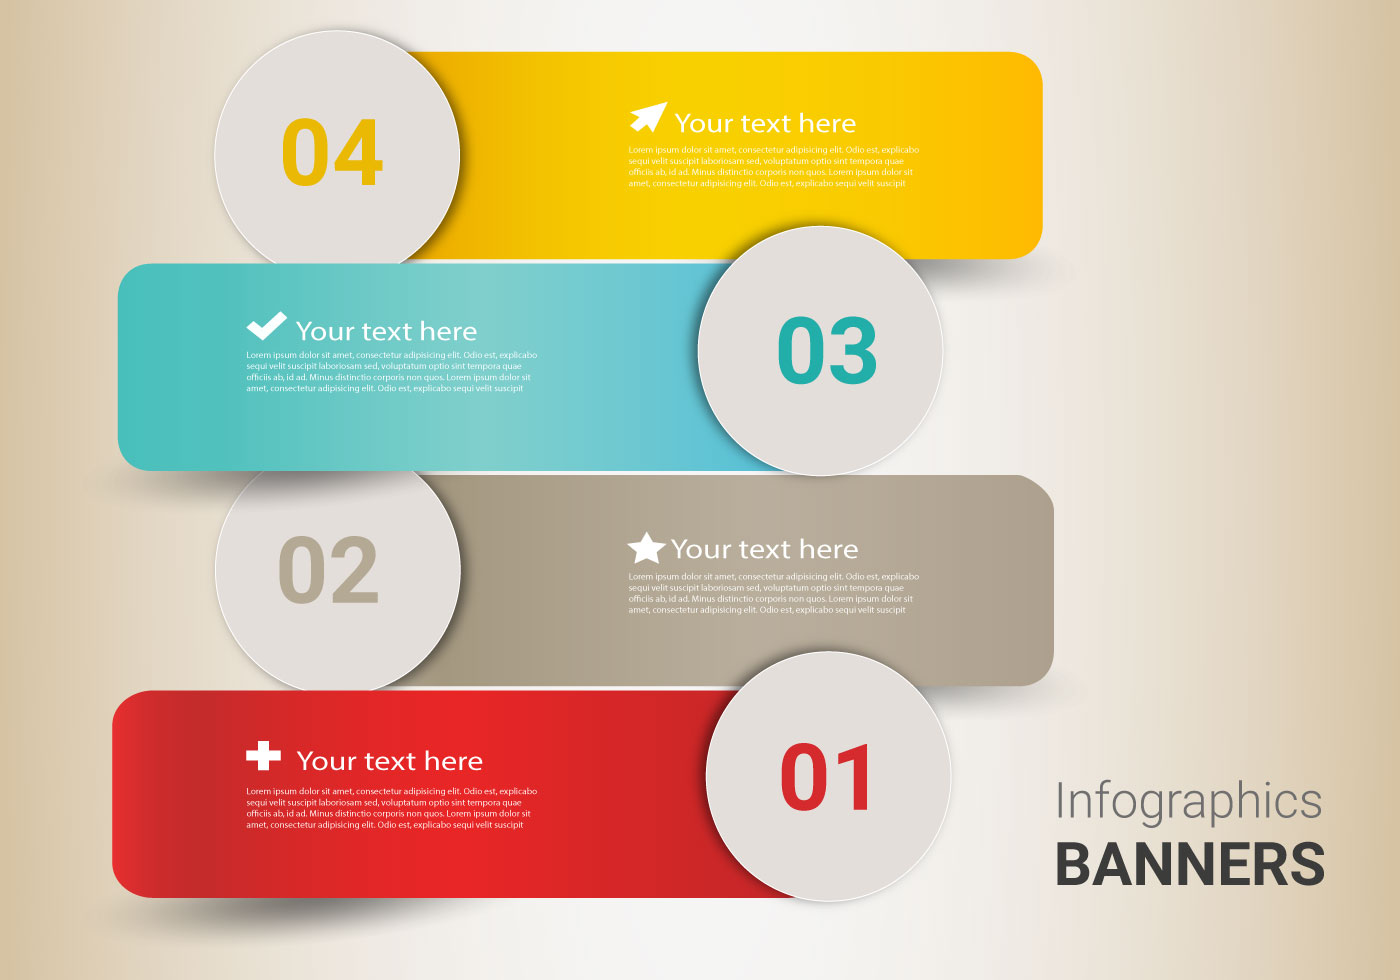 Free Infographic Banners Vector - Download Free Vector Art ...